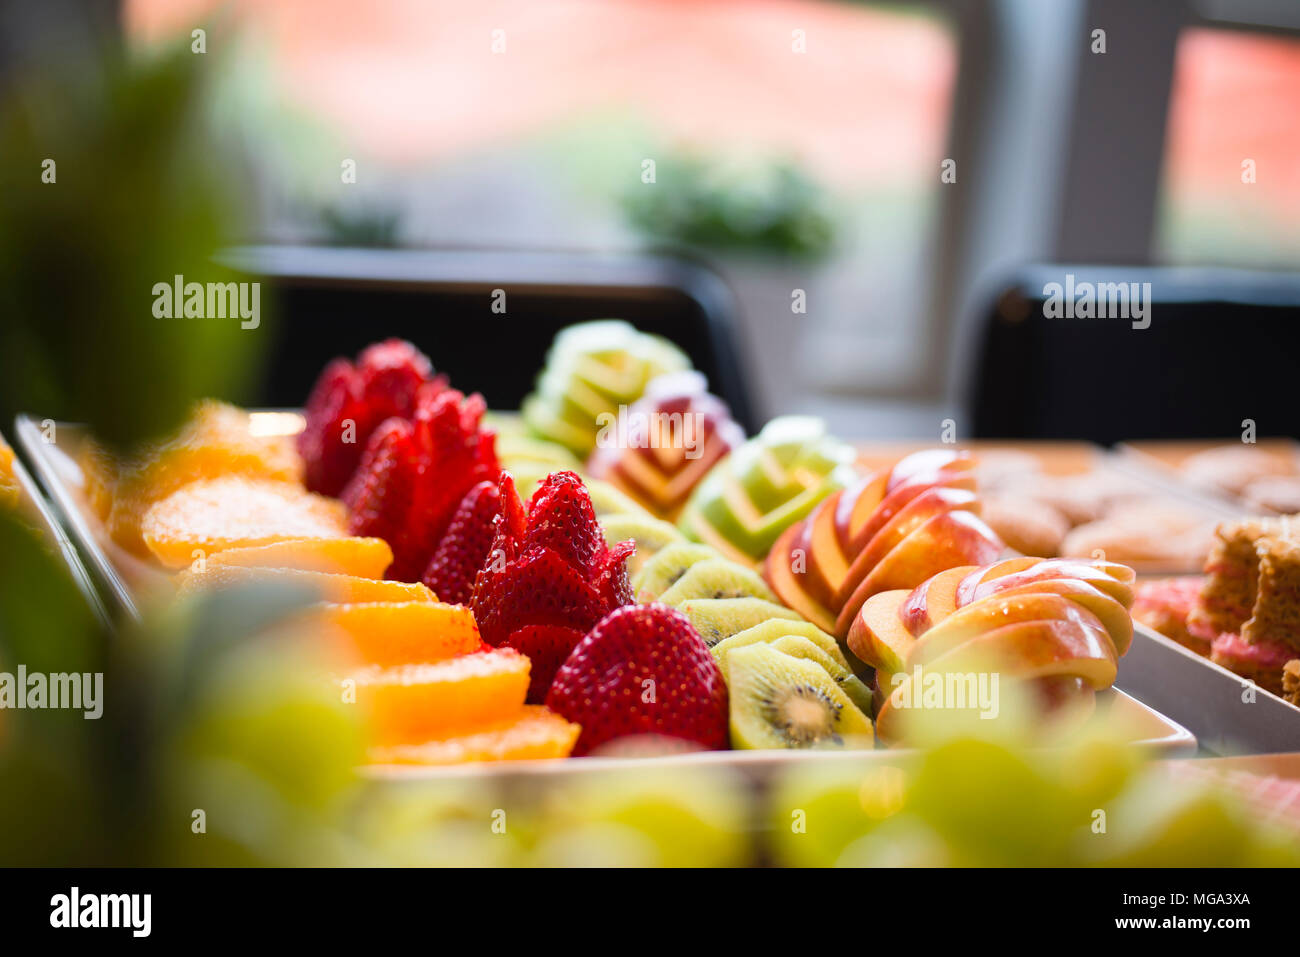 Neatly laid out delicious delicacies low-calorie desserts of sliced apples strawberry kiwi oranges and baked cookies are ready for any festive table d - Stock Image